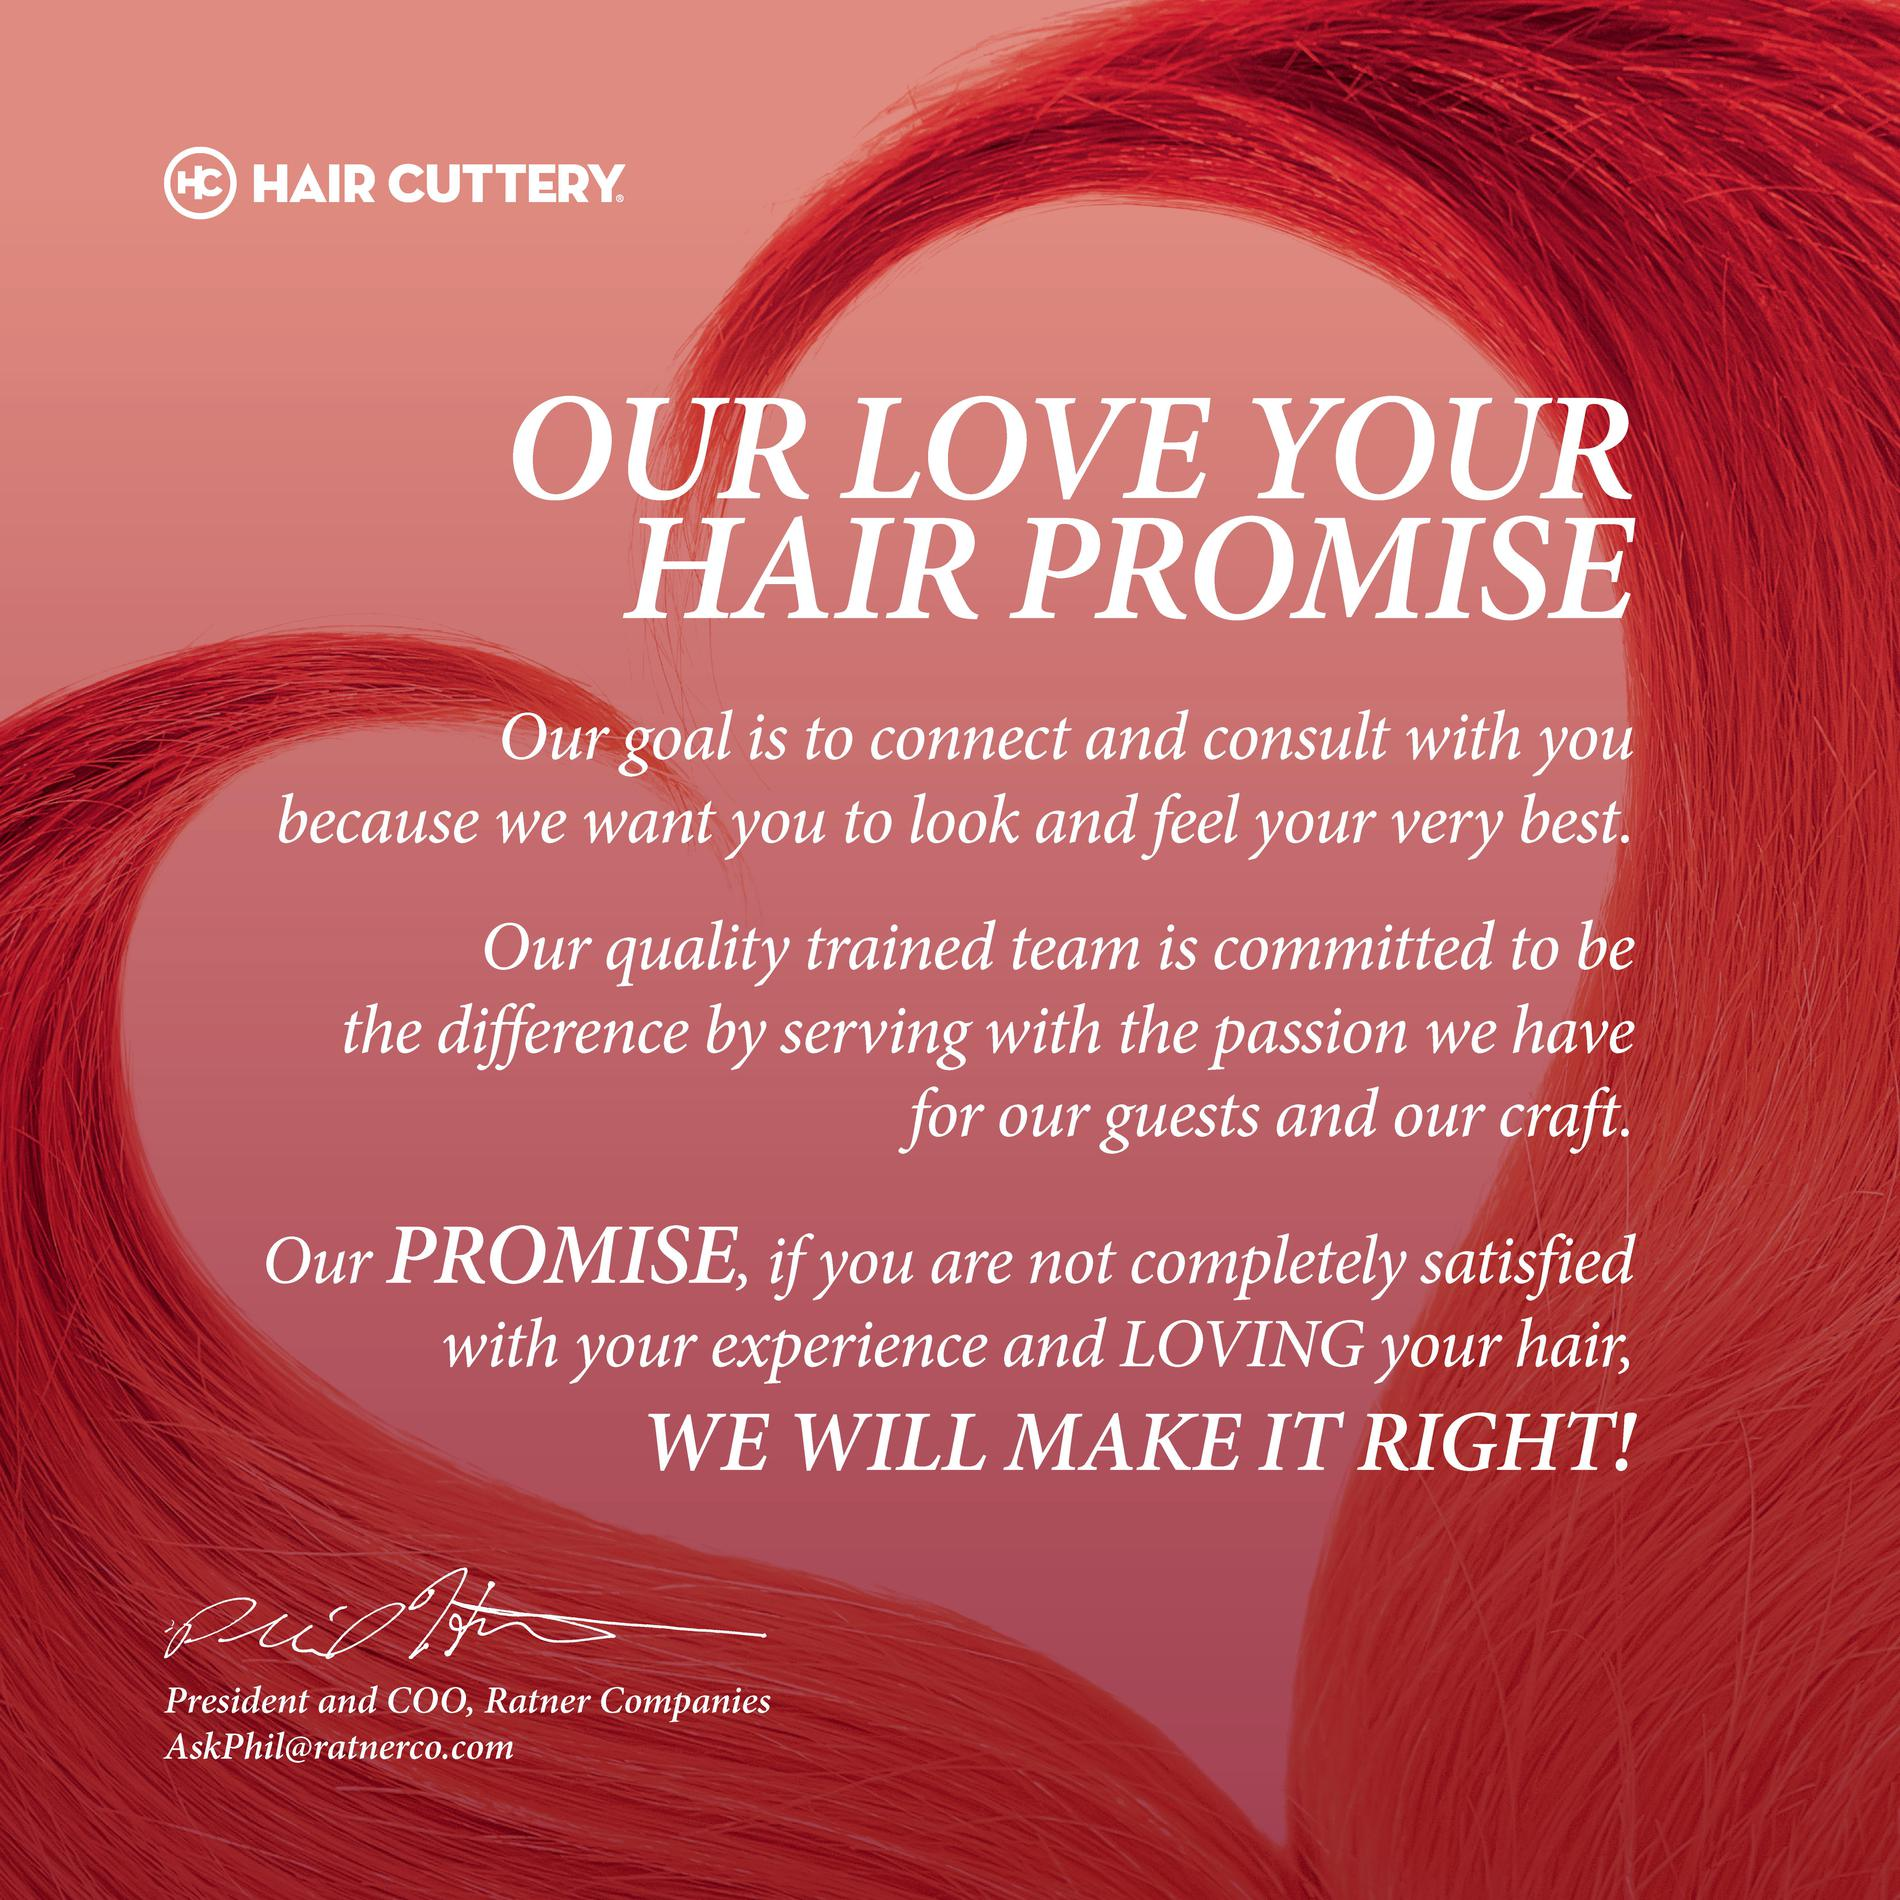 Hair Cuttery at 6097 Us Highway 6